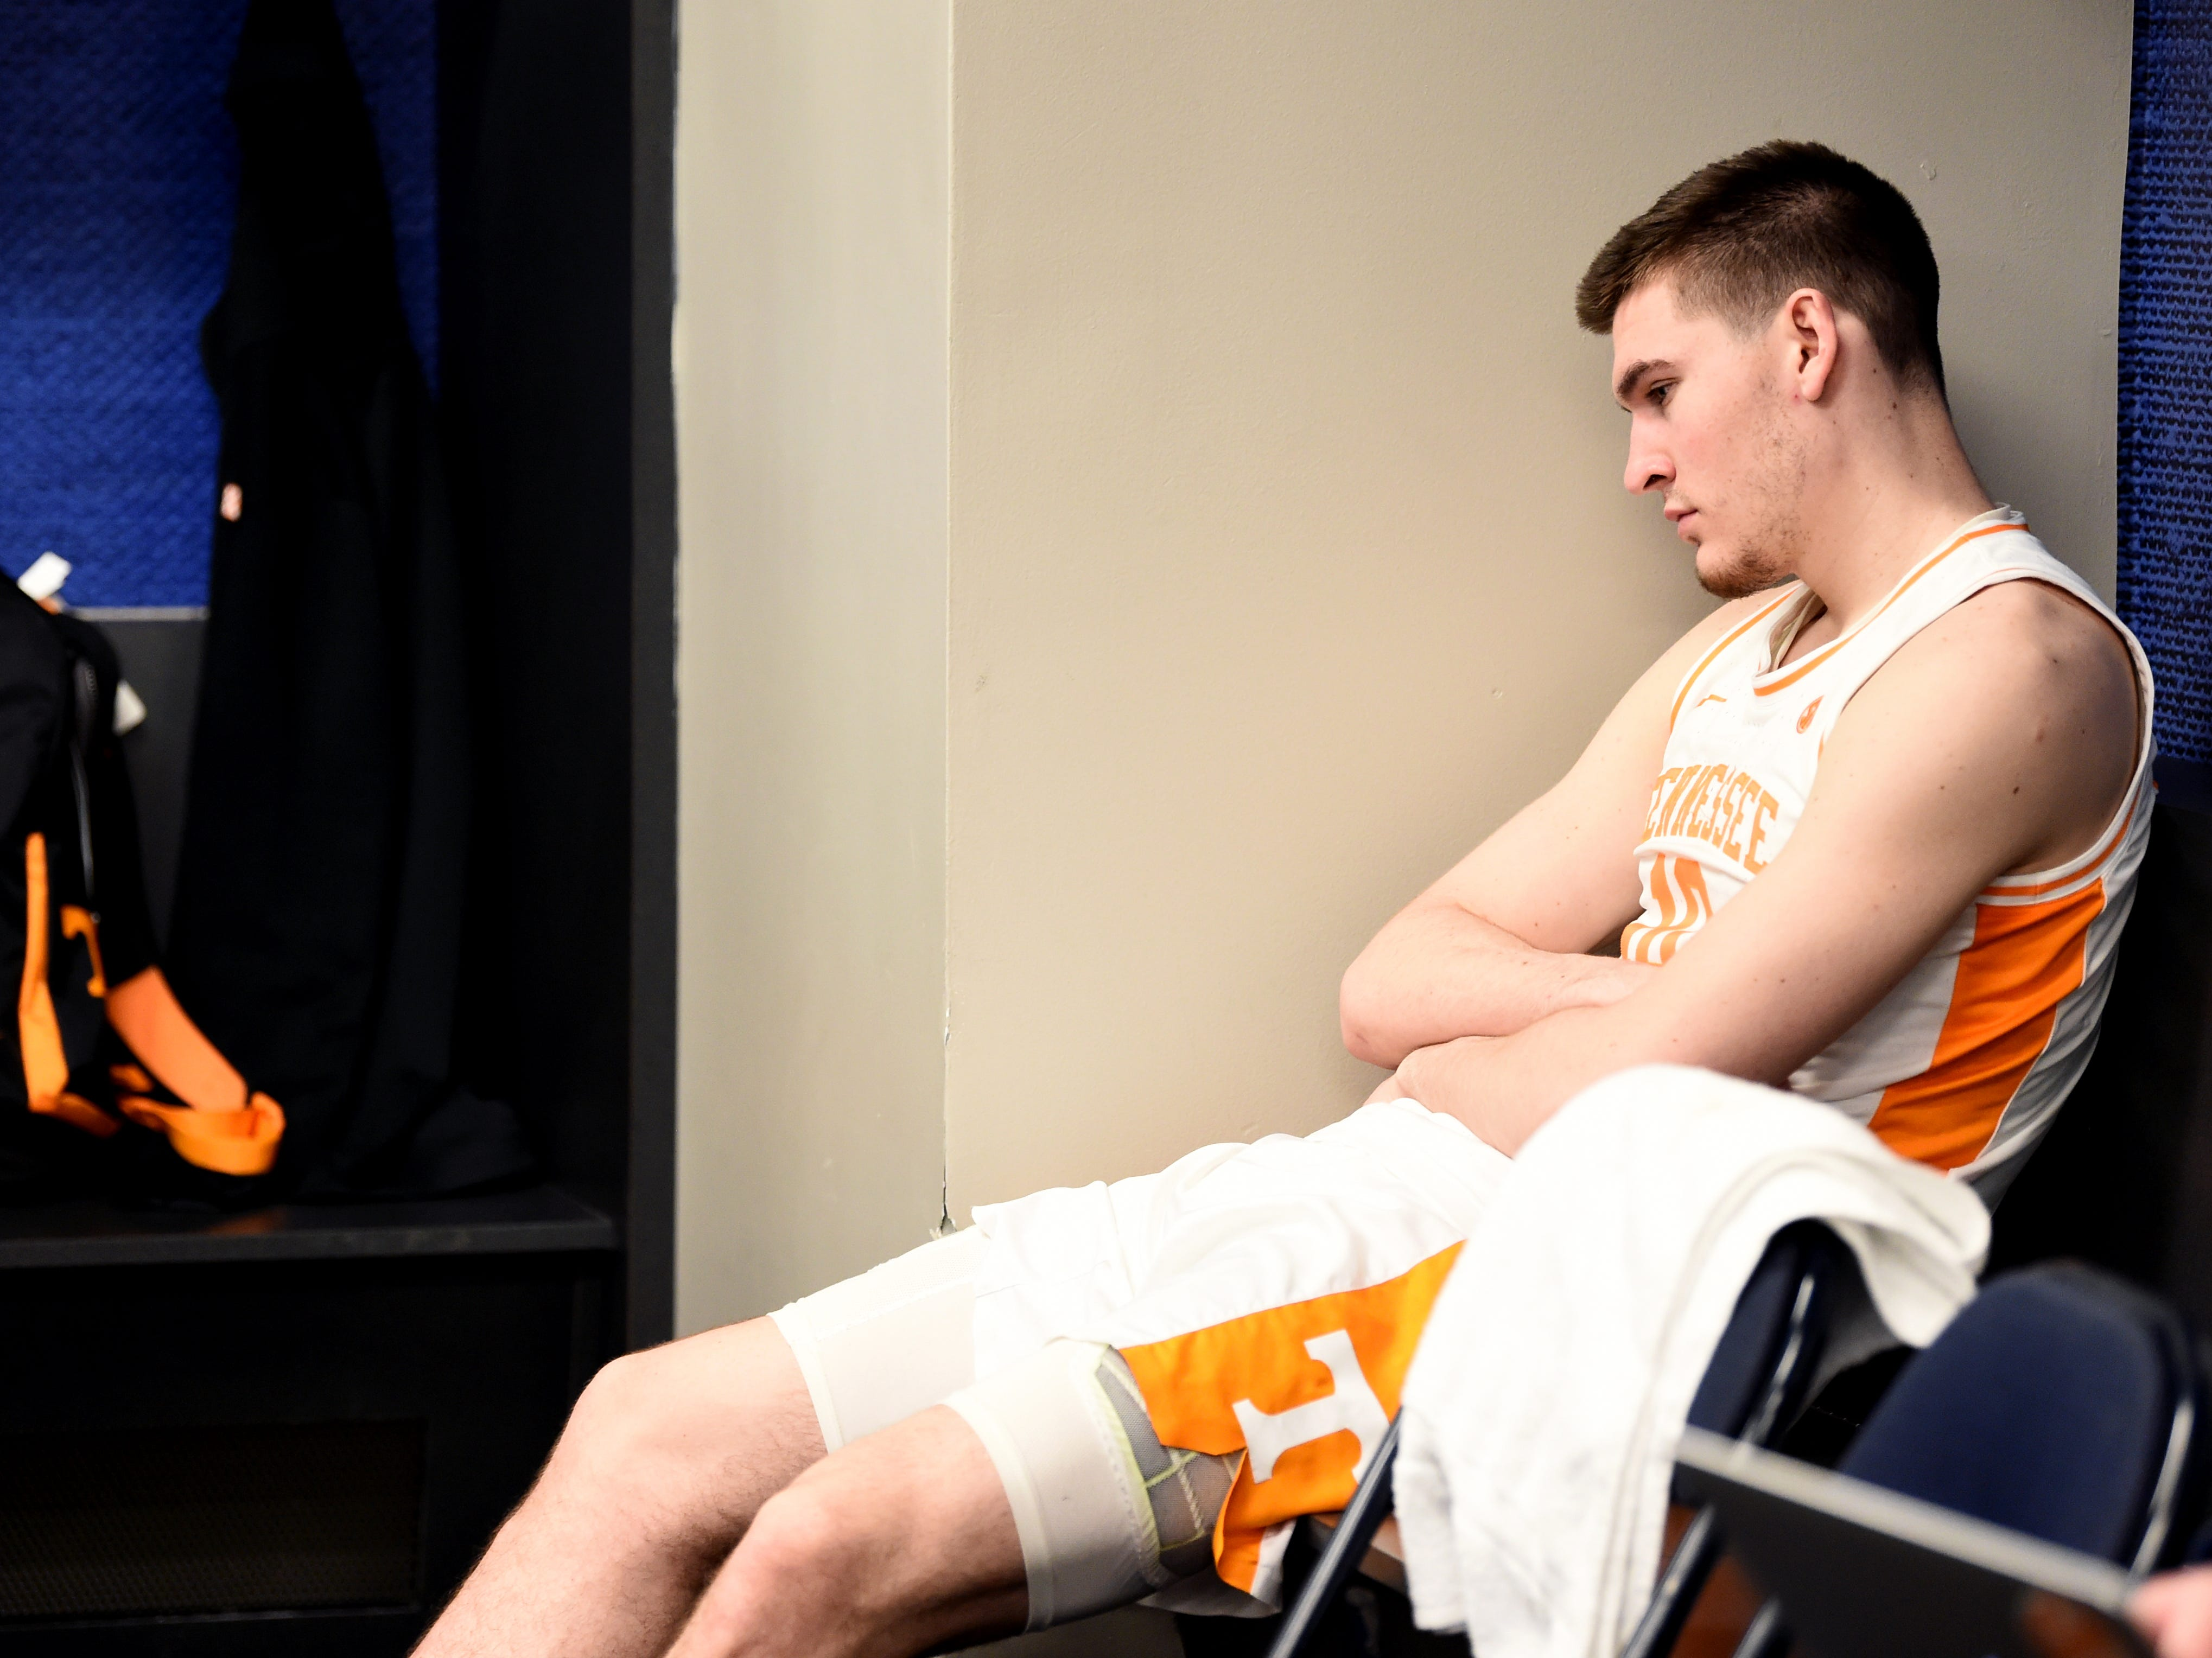 Tennessee forward John Fulkerson (10) sits dejectedly in the locker room following the Vols' 84-64 loss to Auburn in the SEC Tournament Championship held at Bridgestone Arena in Nashville on Sunday, March 17, 2019.